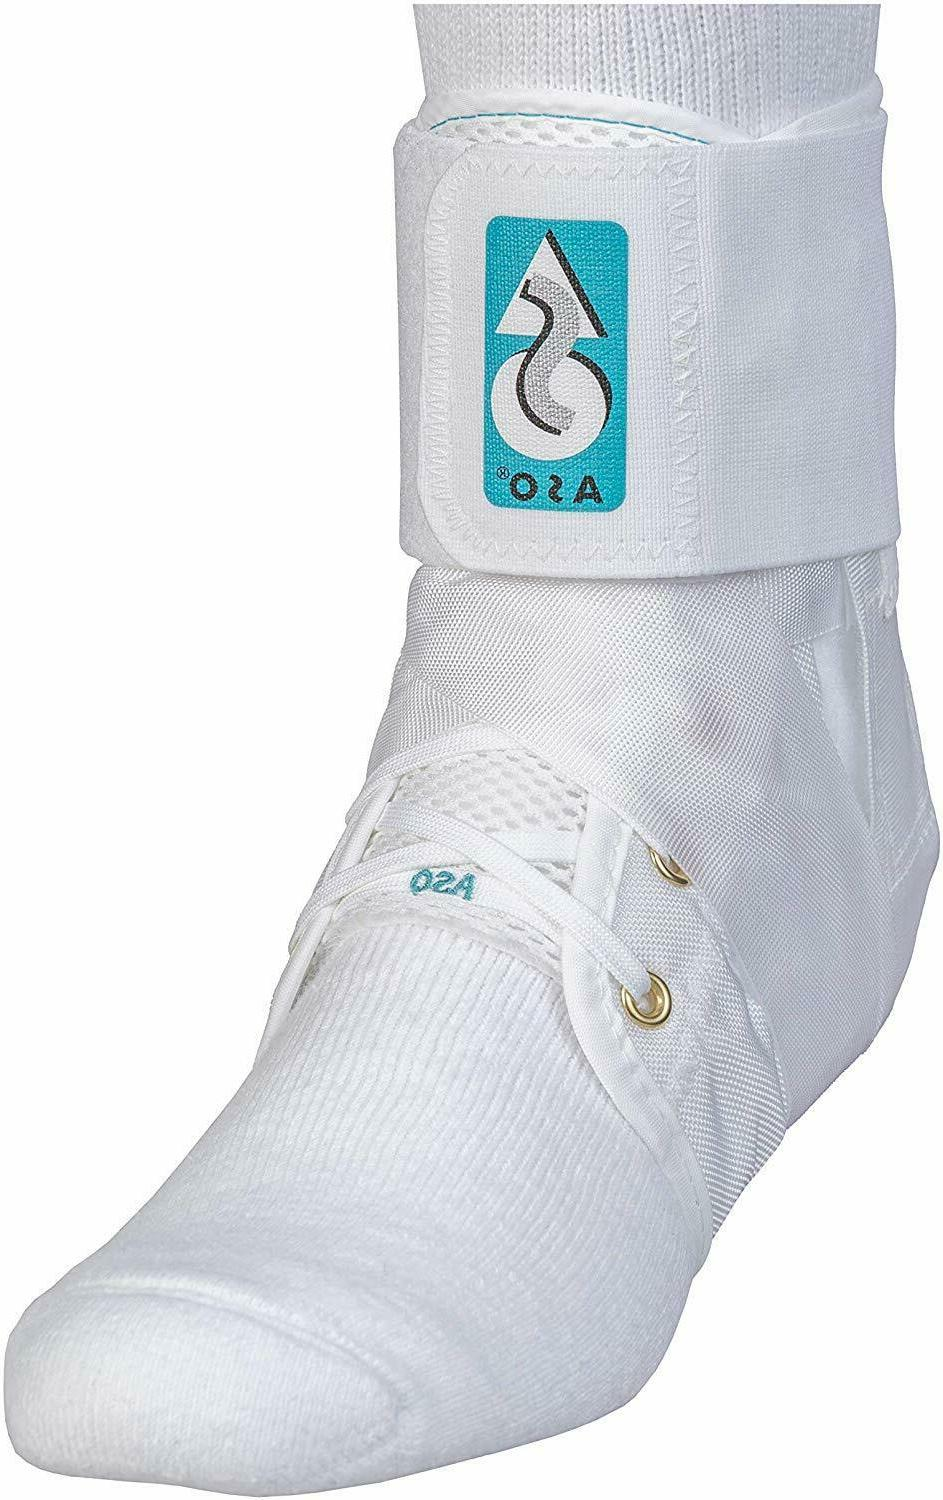 aso white ankle stabilizer ankle brace lace